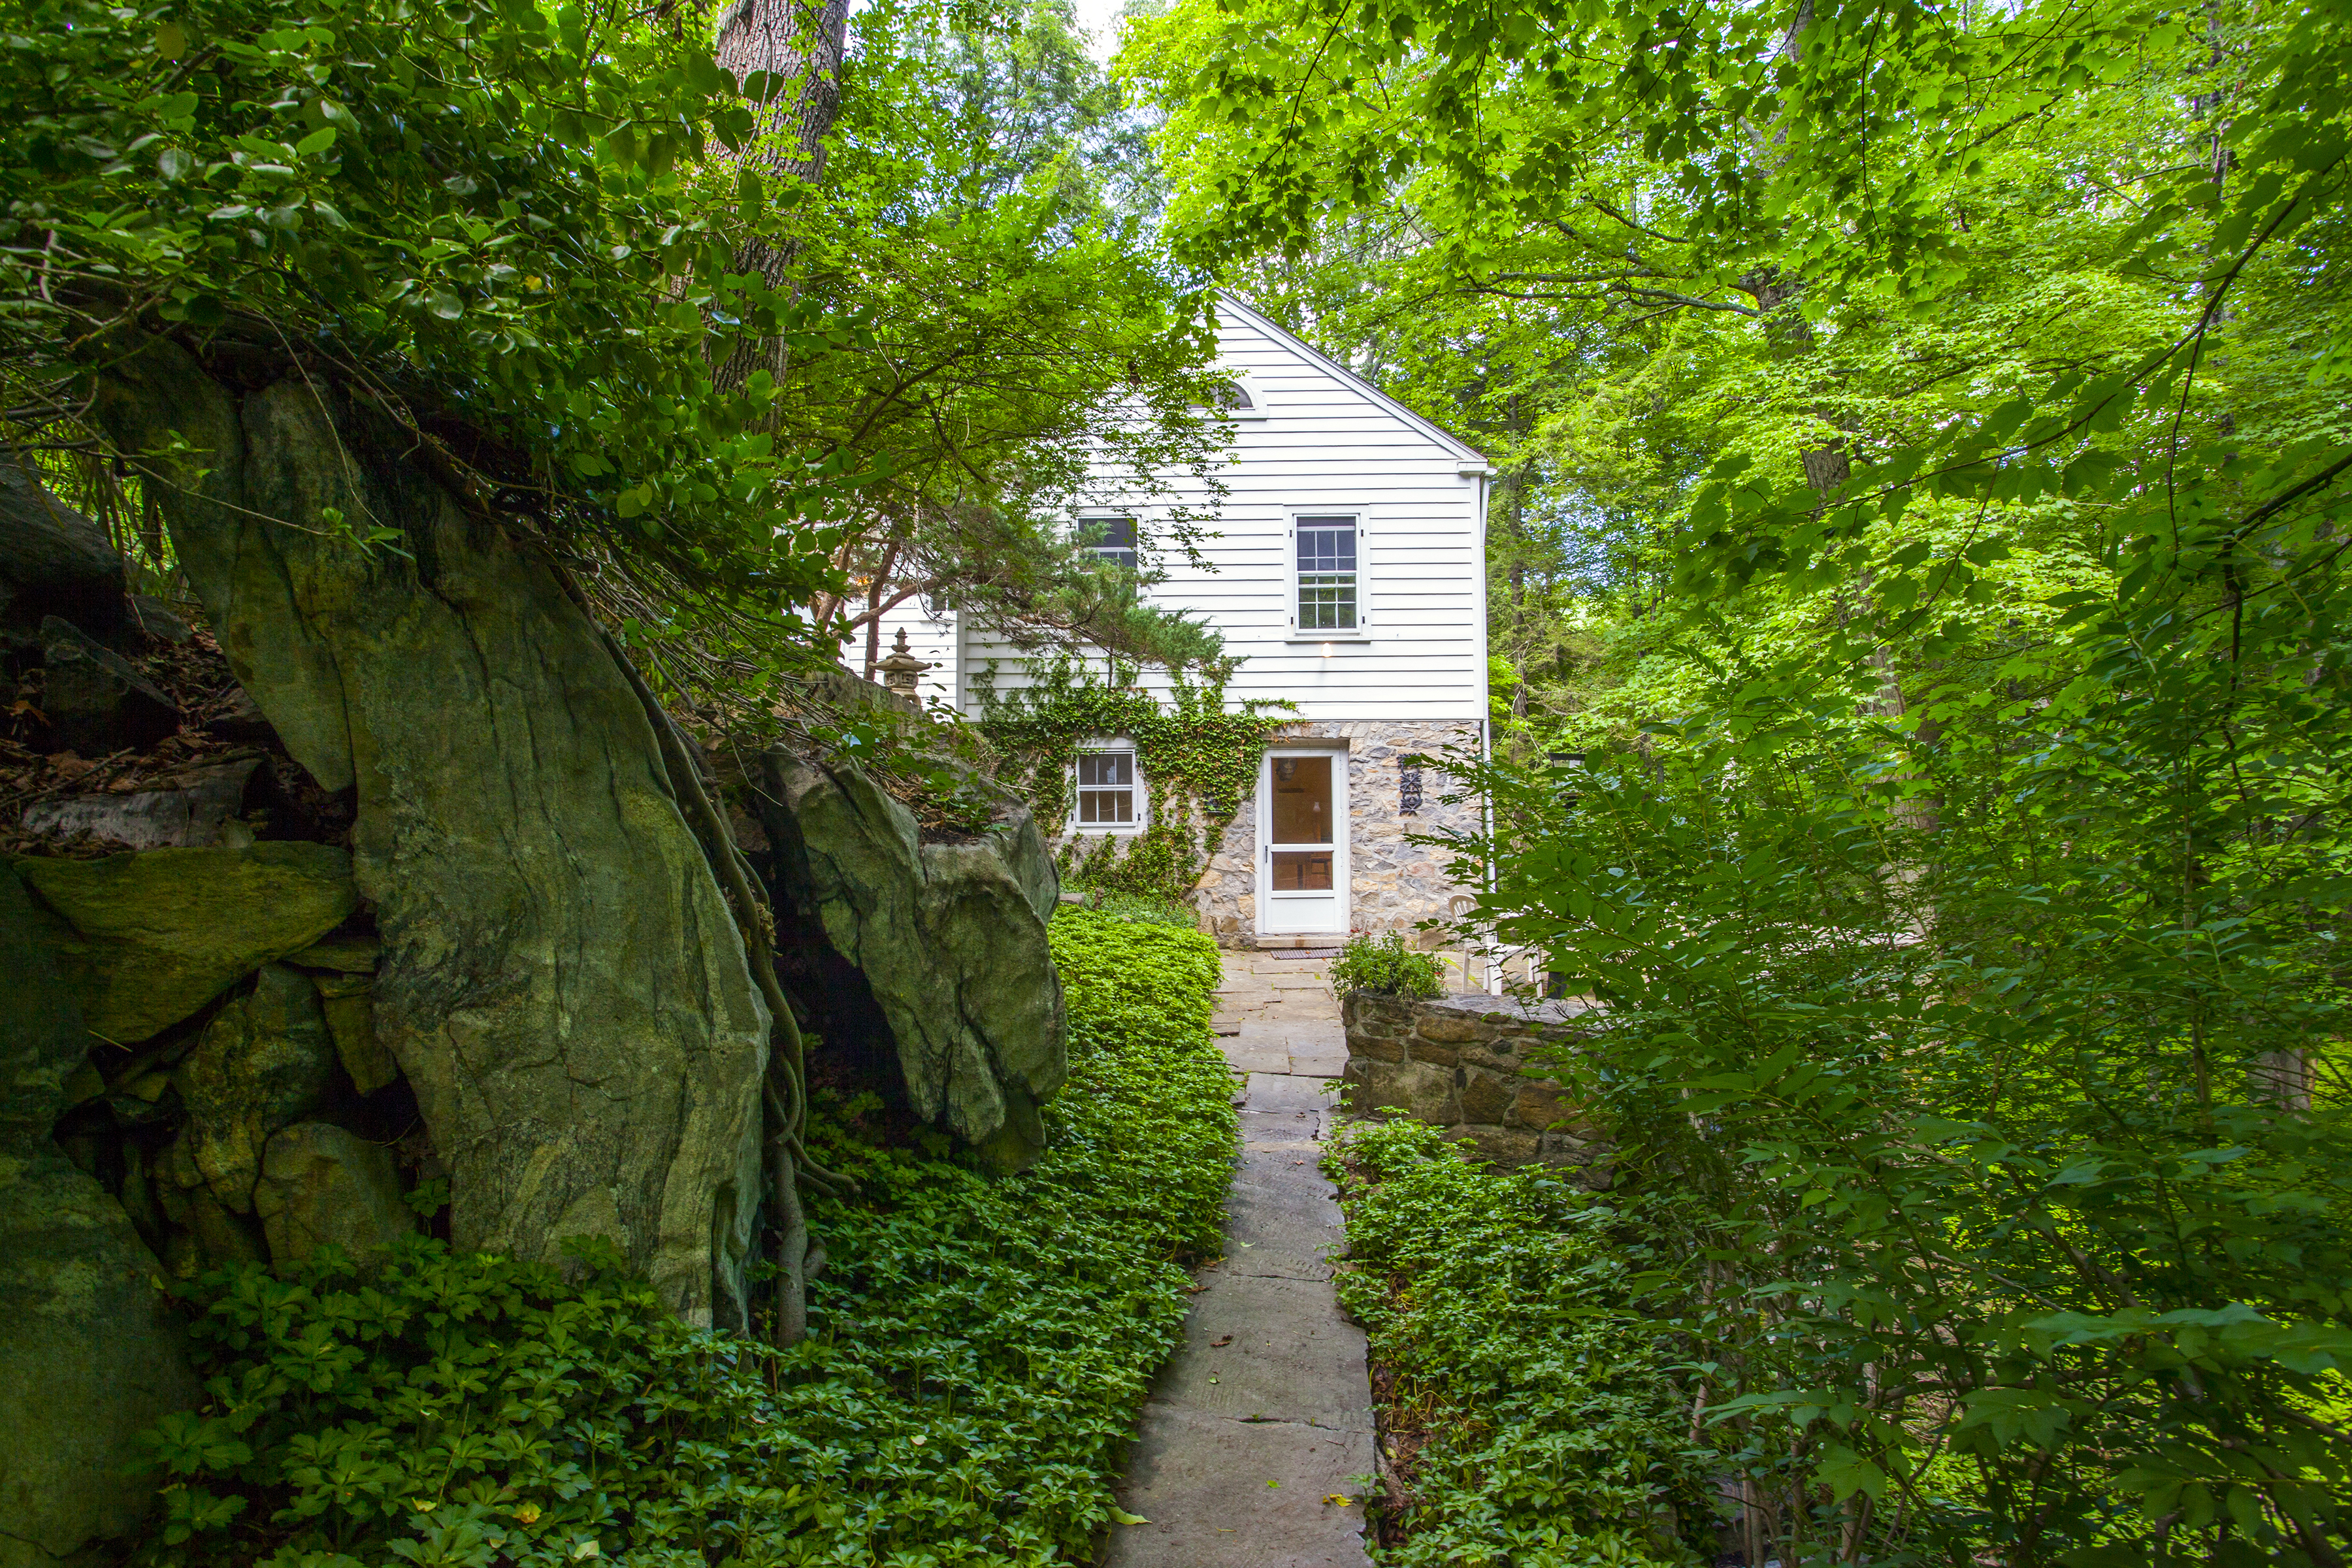 Single Family Home for Sale at Hidden Riverside Treasure 618 Kent Rd New Milford, Connecticut, 06755 United States